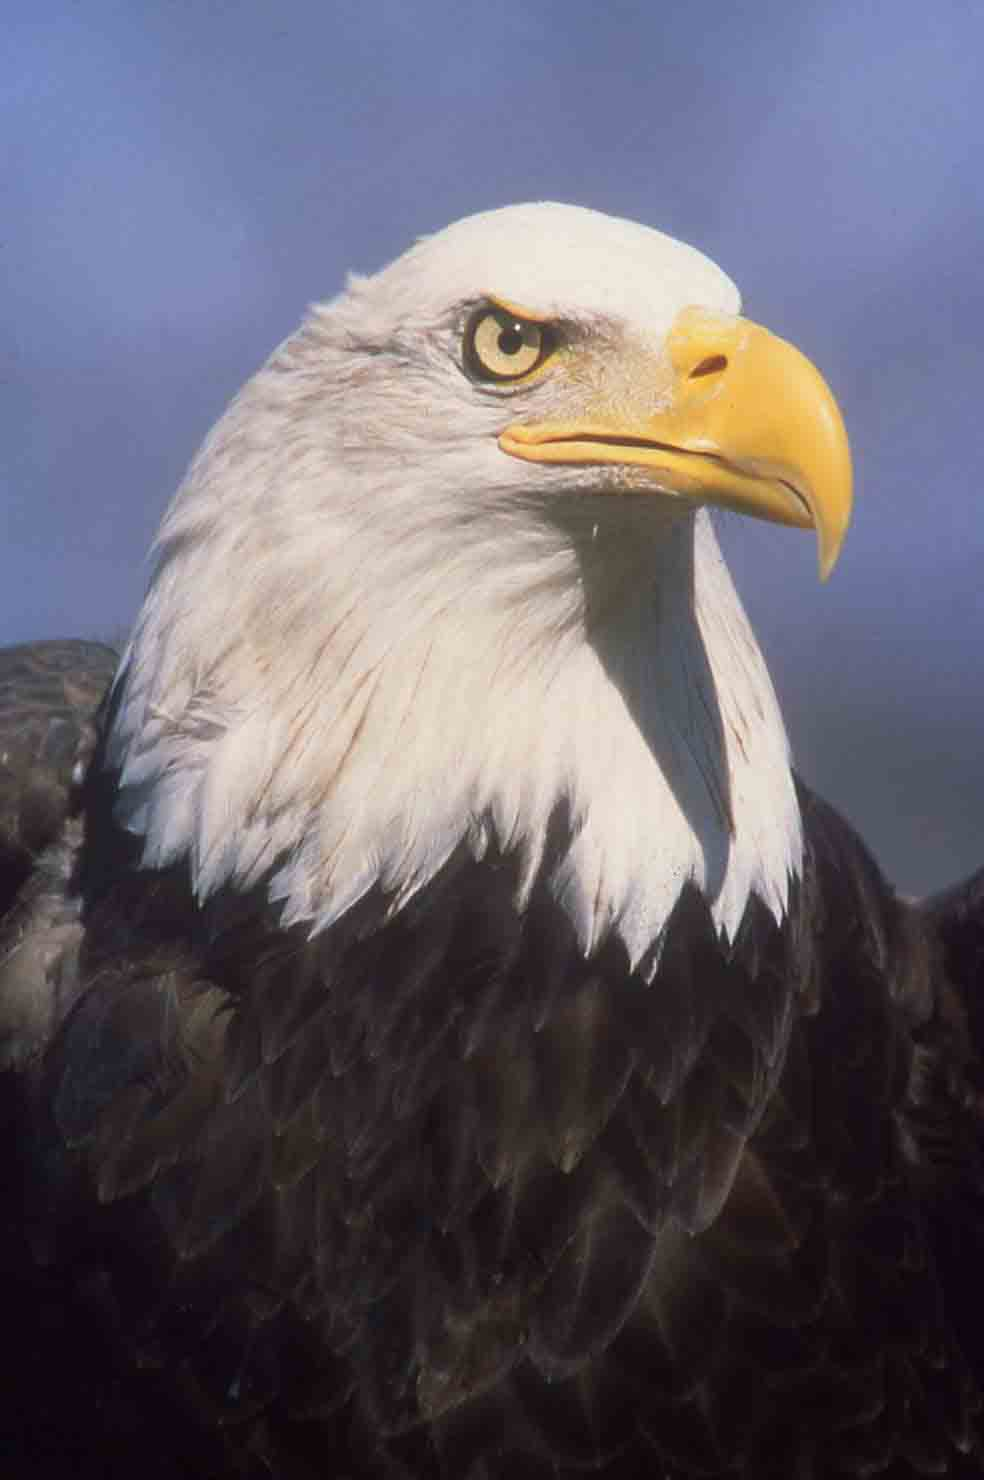 american bald eagle essay History of the american flag essay for second dissertation american bald eagle: find this pin and more on patriotic eagles by mspinks44 bald eagle.